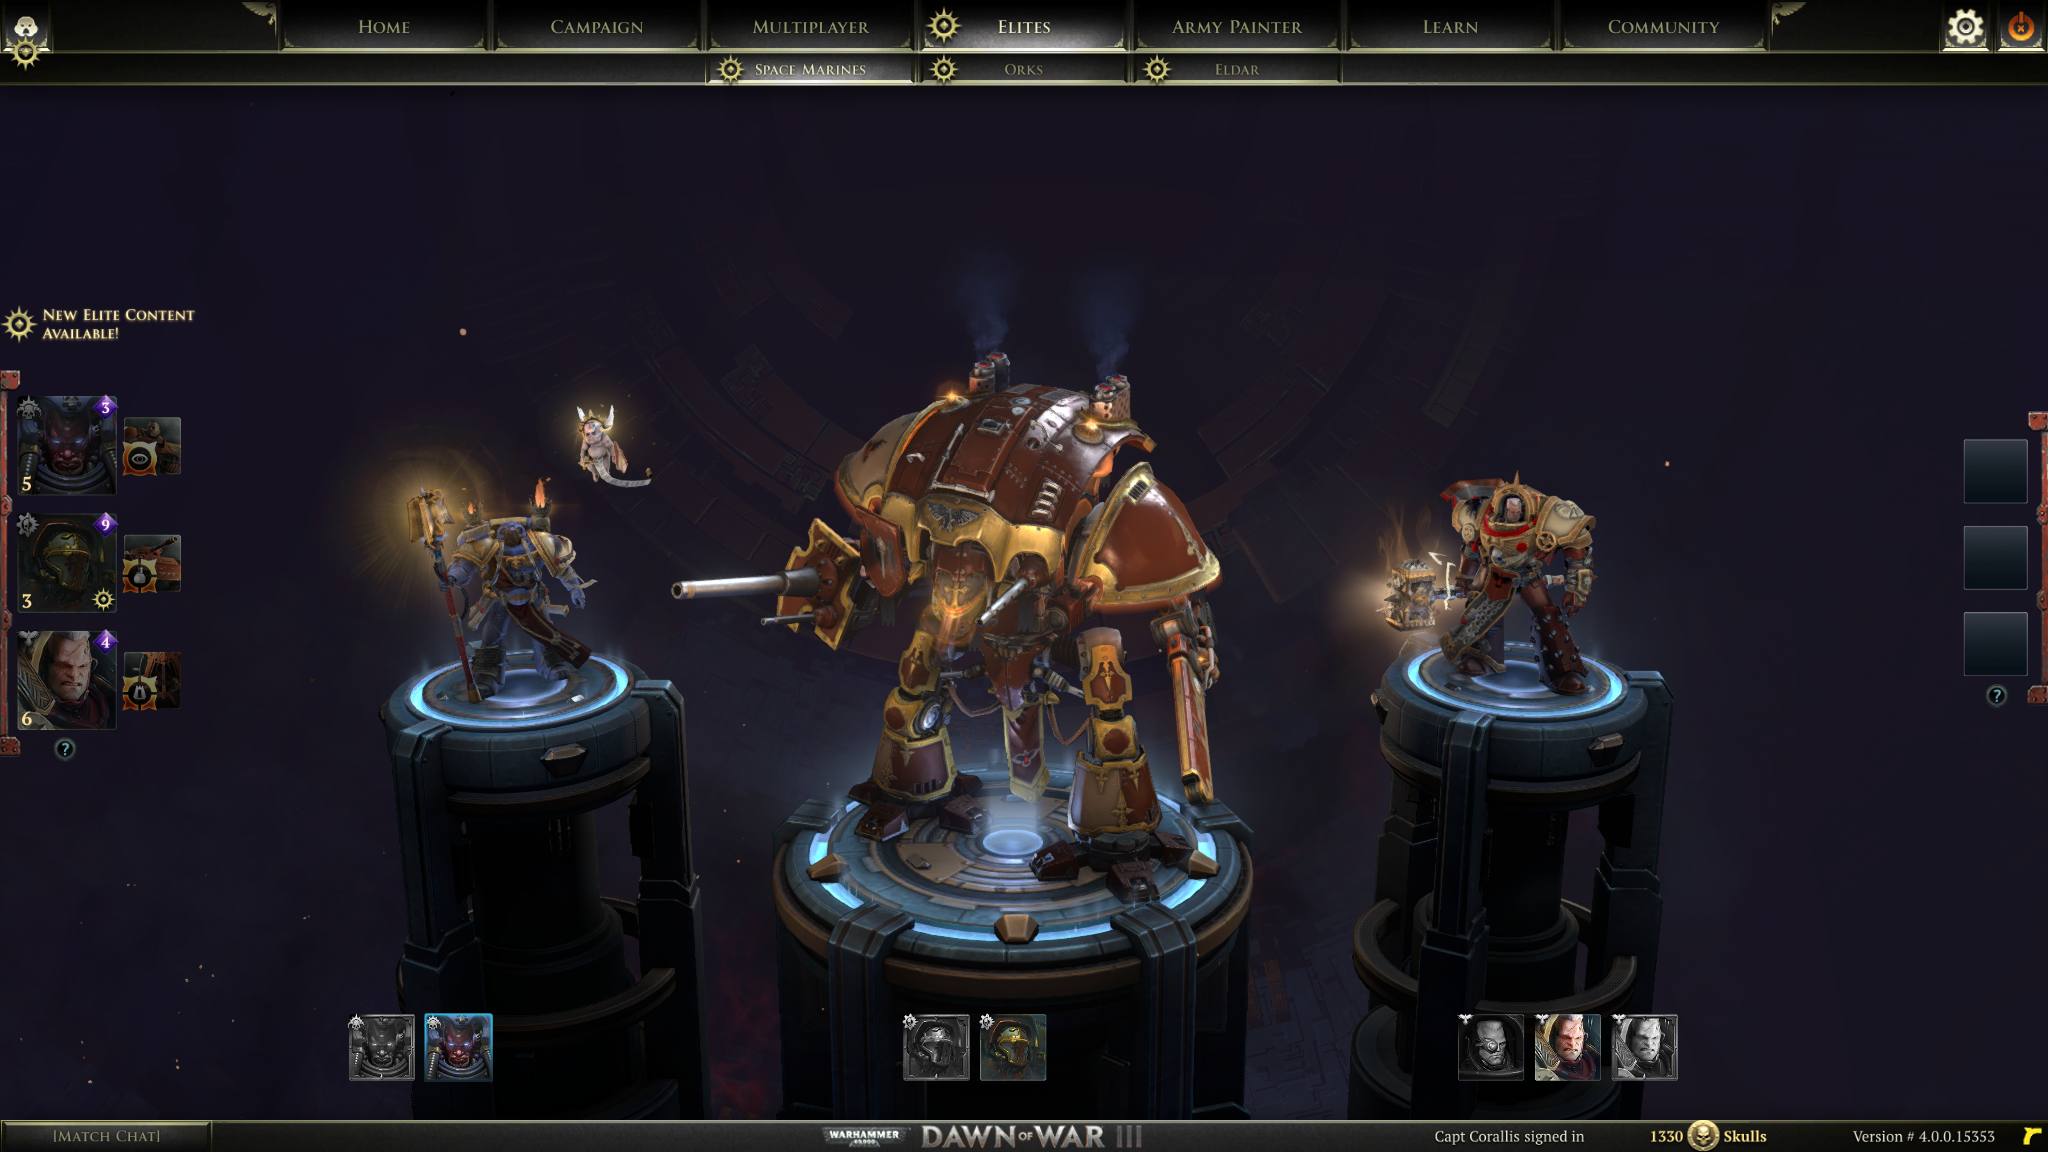 Dawn of War 3 Hero Screen